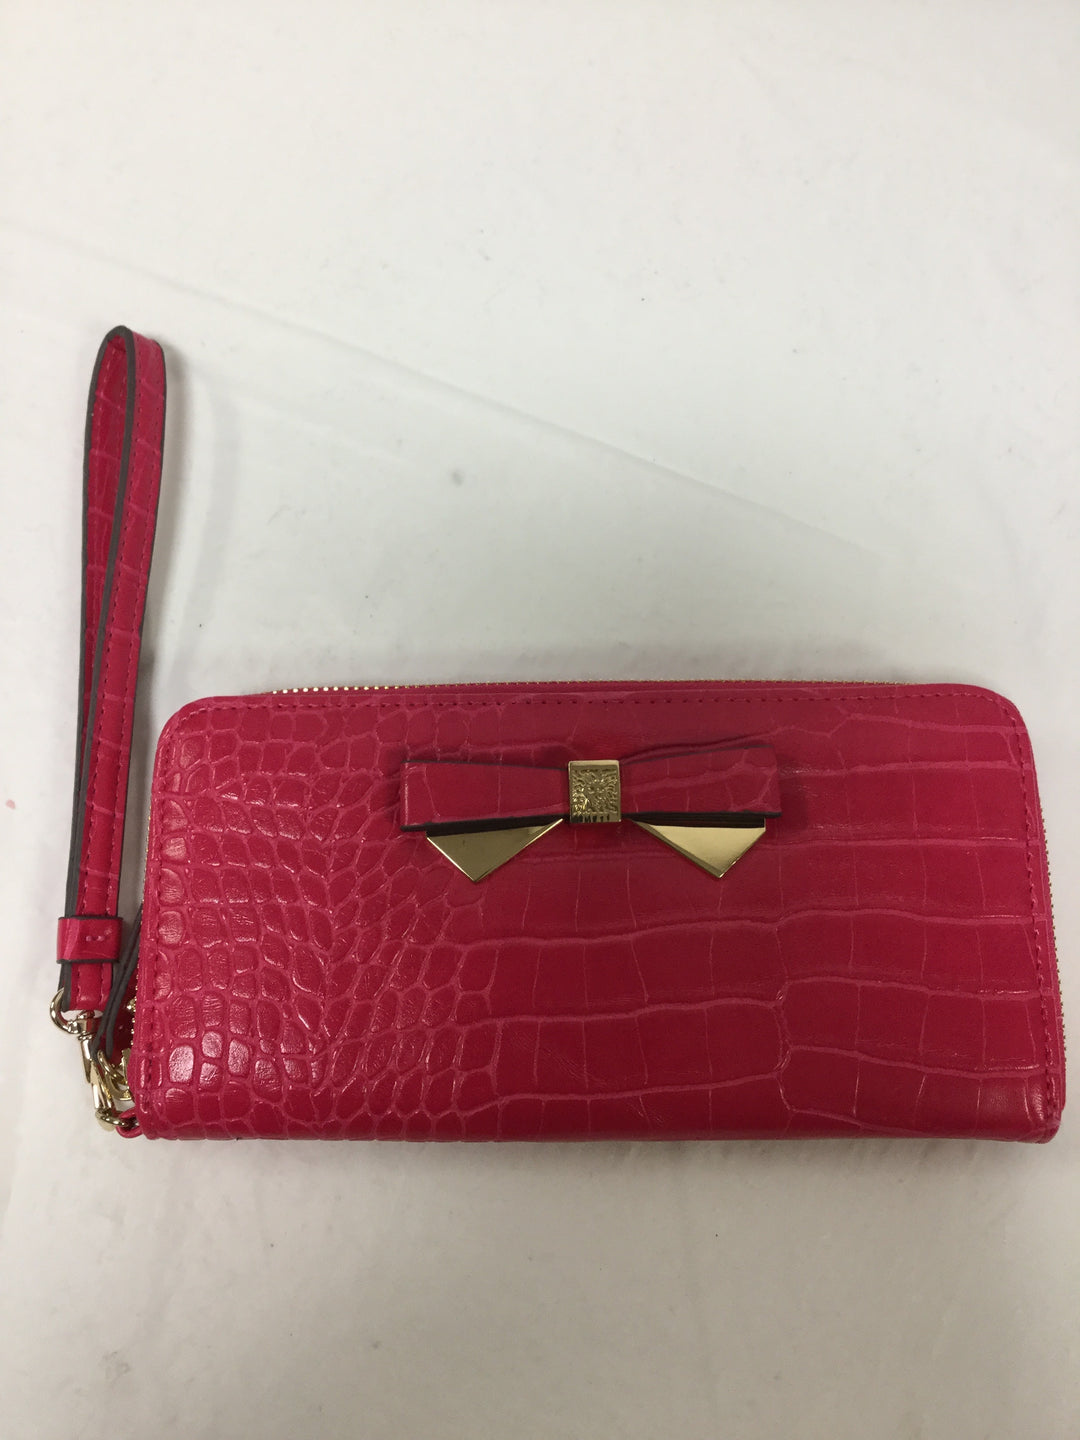 Primary Photo - BRAND: ANNE KLEIN O <BR>STYLE: WALLET <BR>COLOR: PINK <BR>SIZE: LARGE <BR>SKU: 155-15599-230245